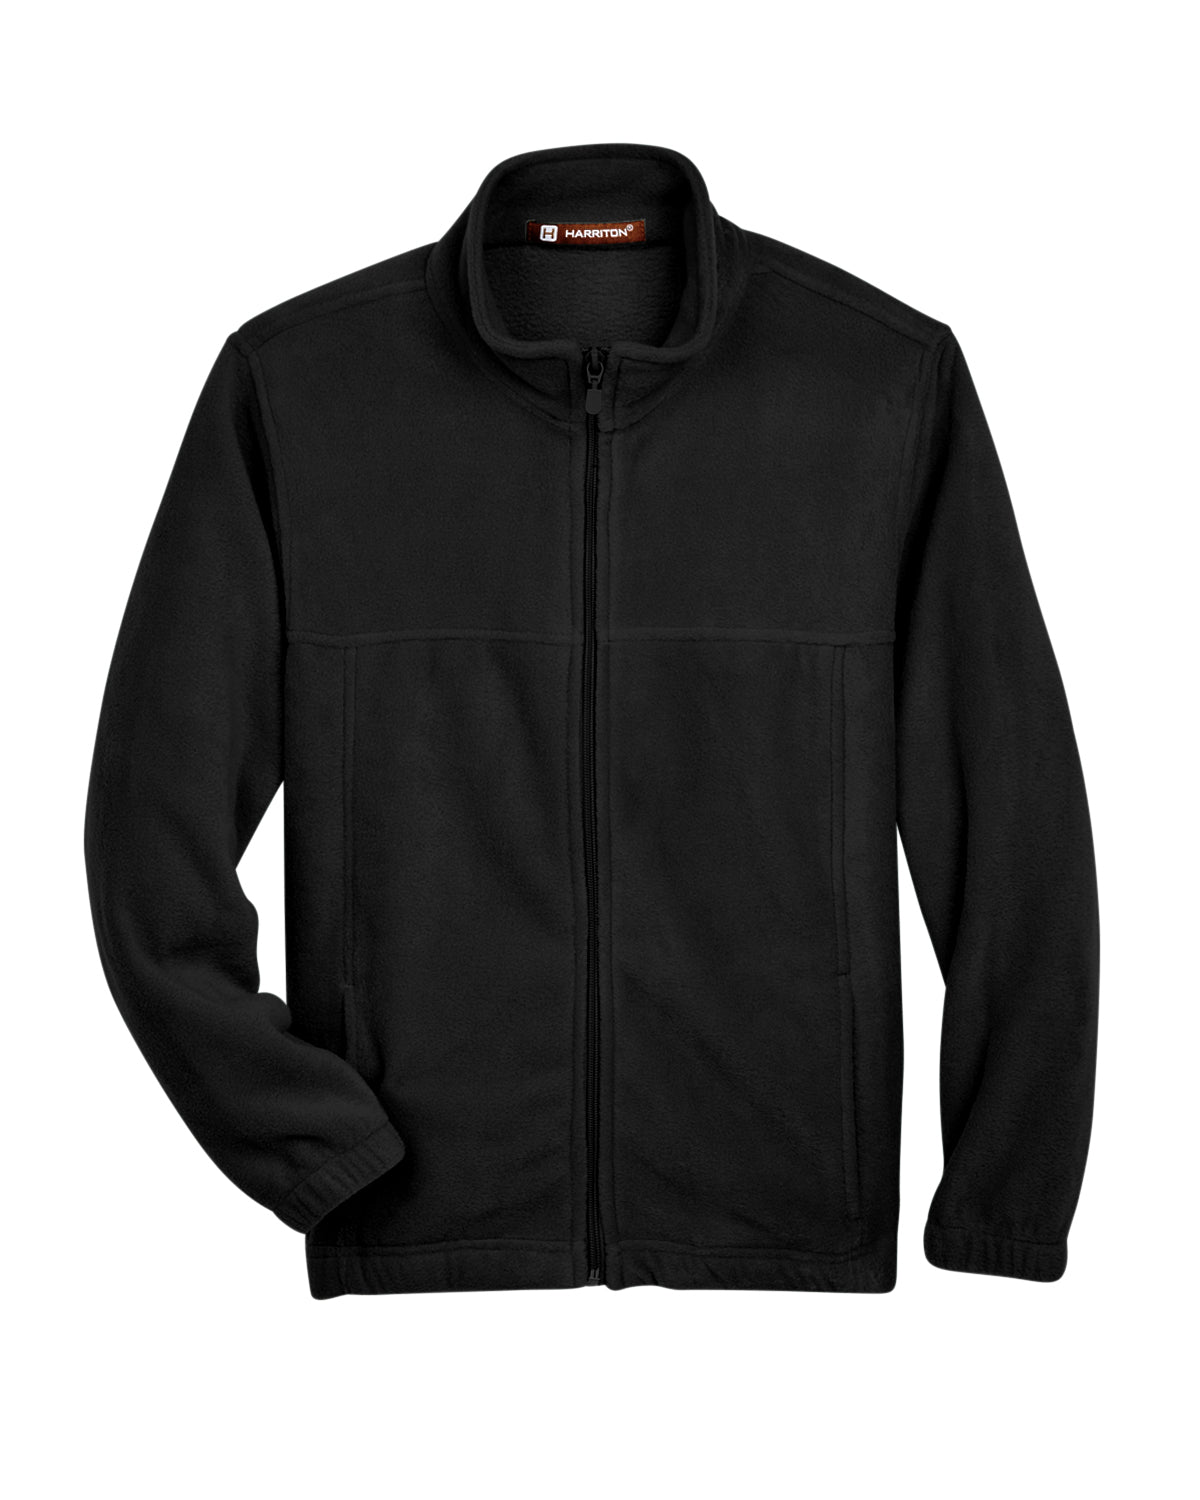 Inspire Academy Adult Full-Zip Polar Fleece Jacket